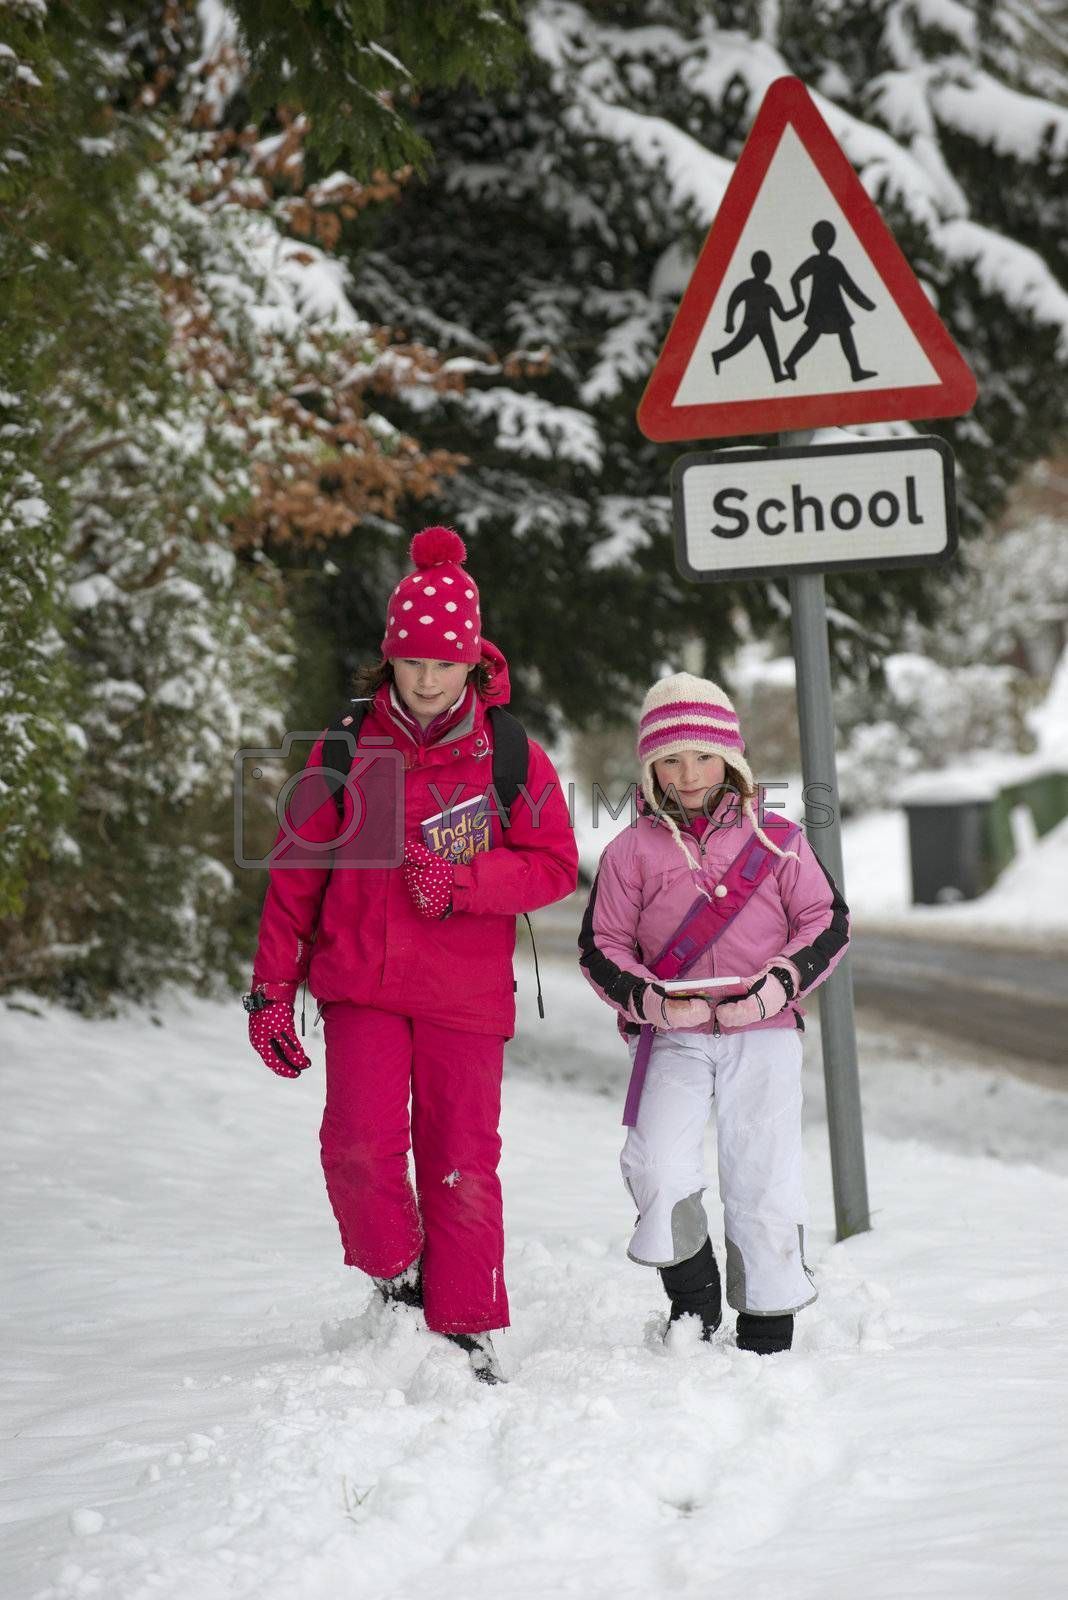 Children walking to school in the snow by Peter t